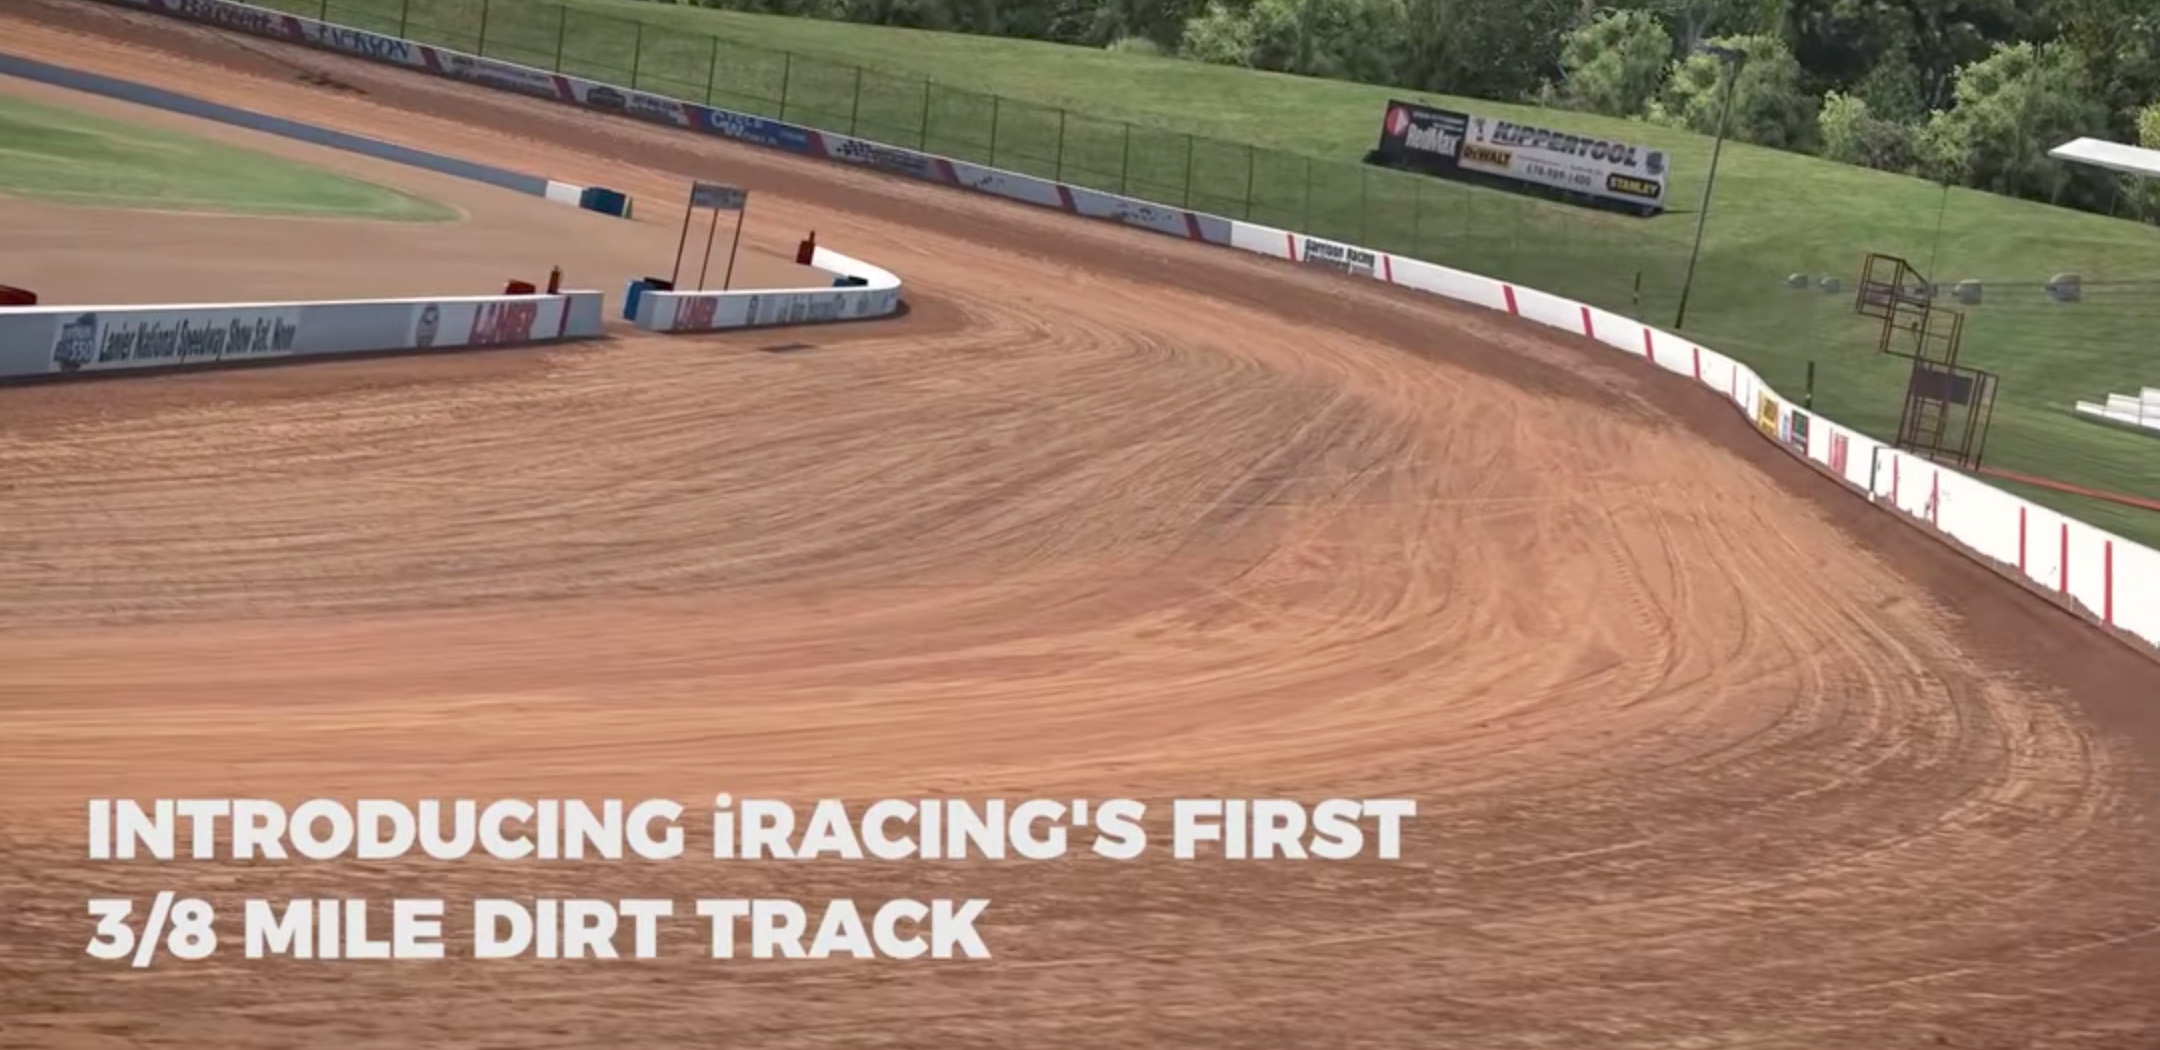 Lanier Dirt Track - Iracing